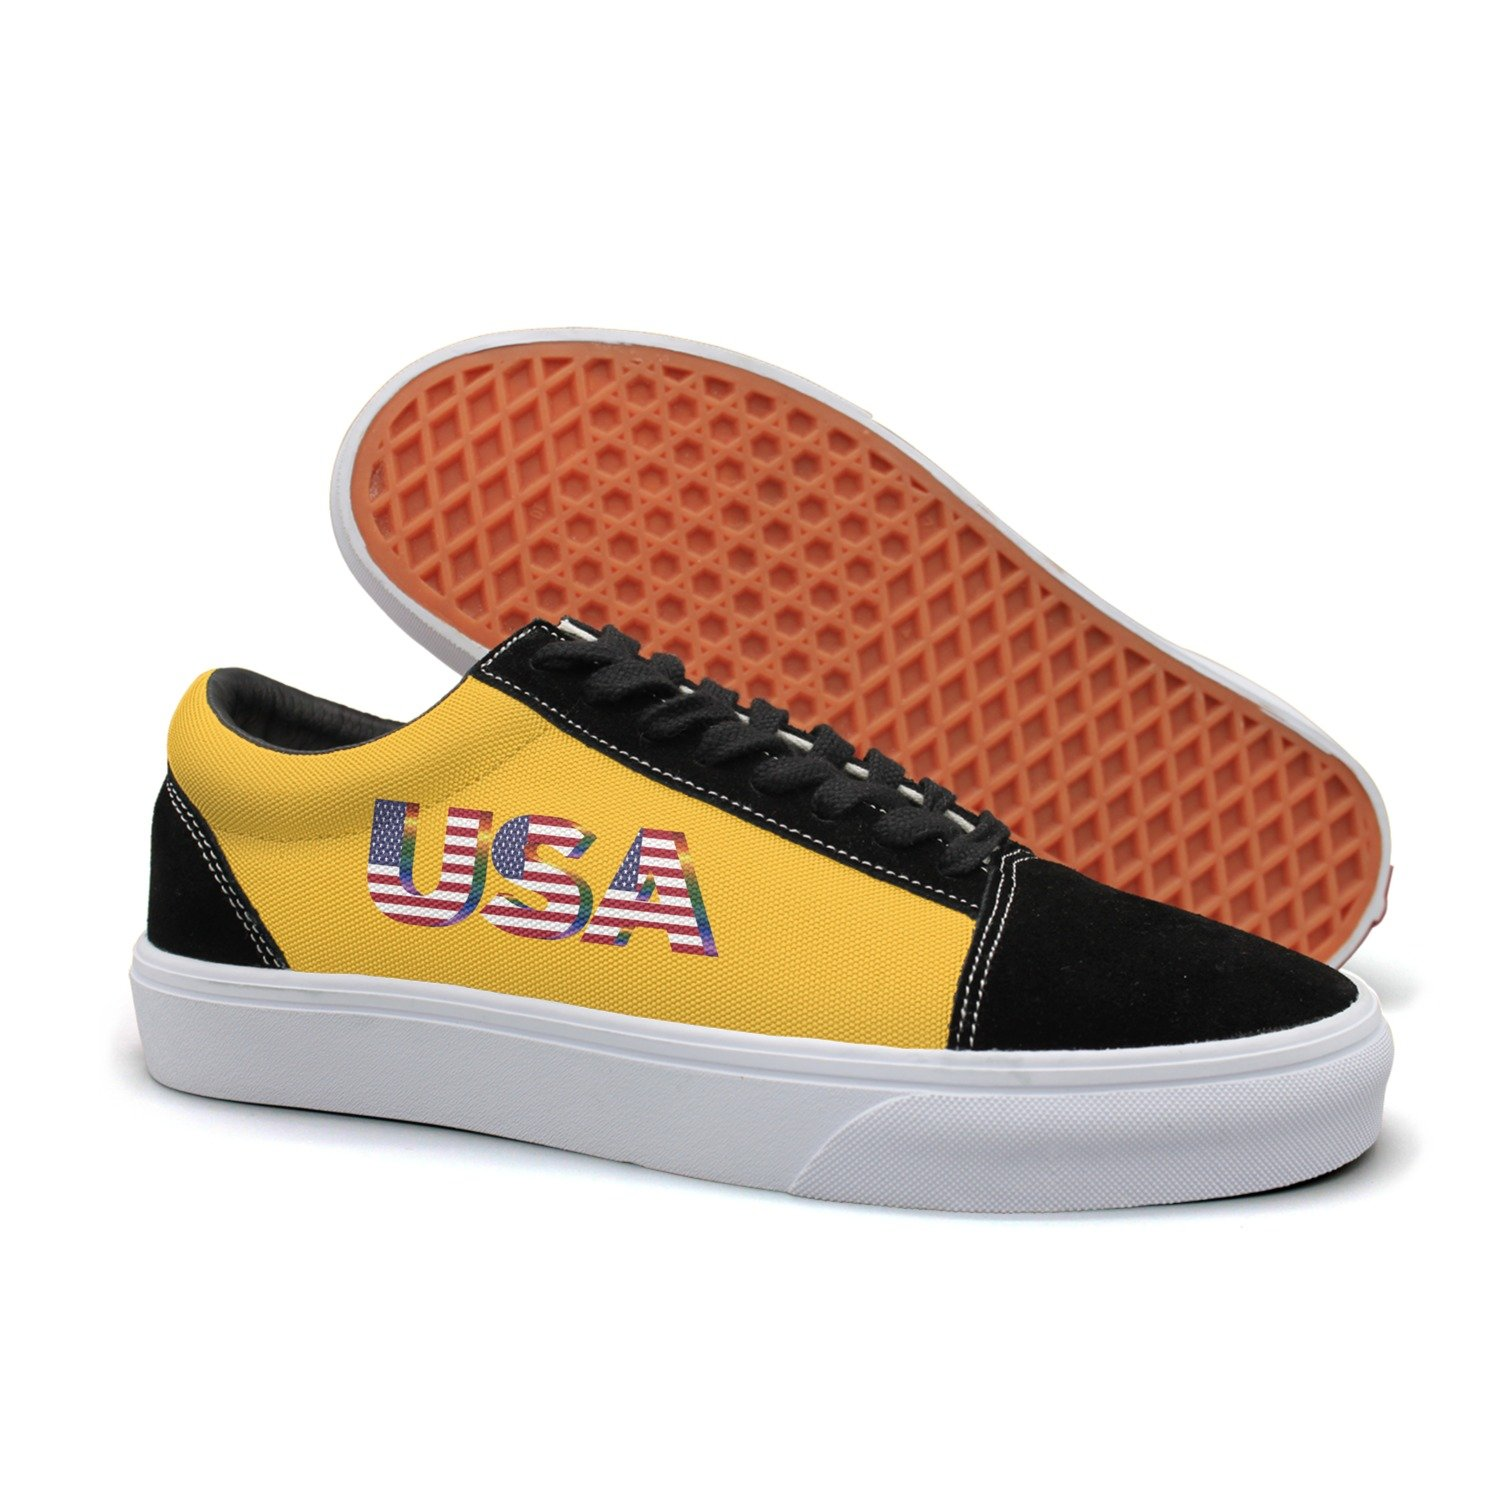 VCERTHDF Colorful Usa Flag Suede Slip-On Shoe Men